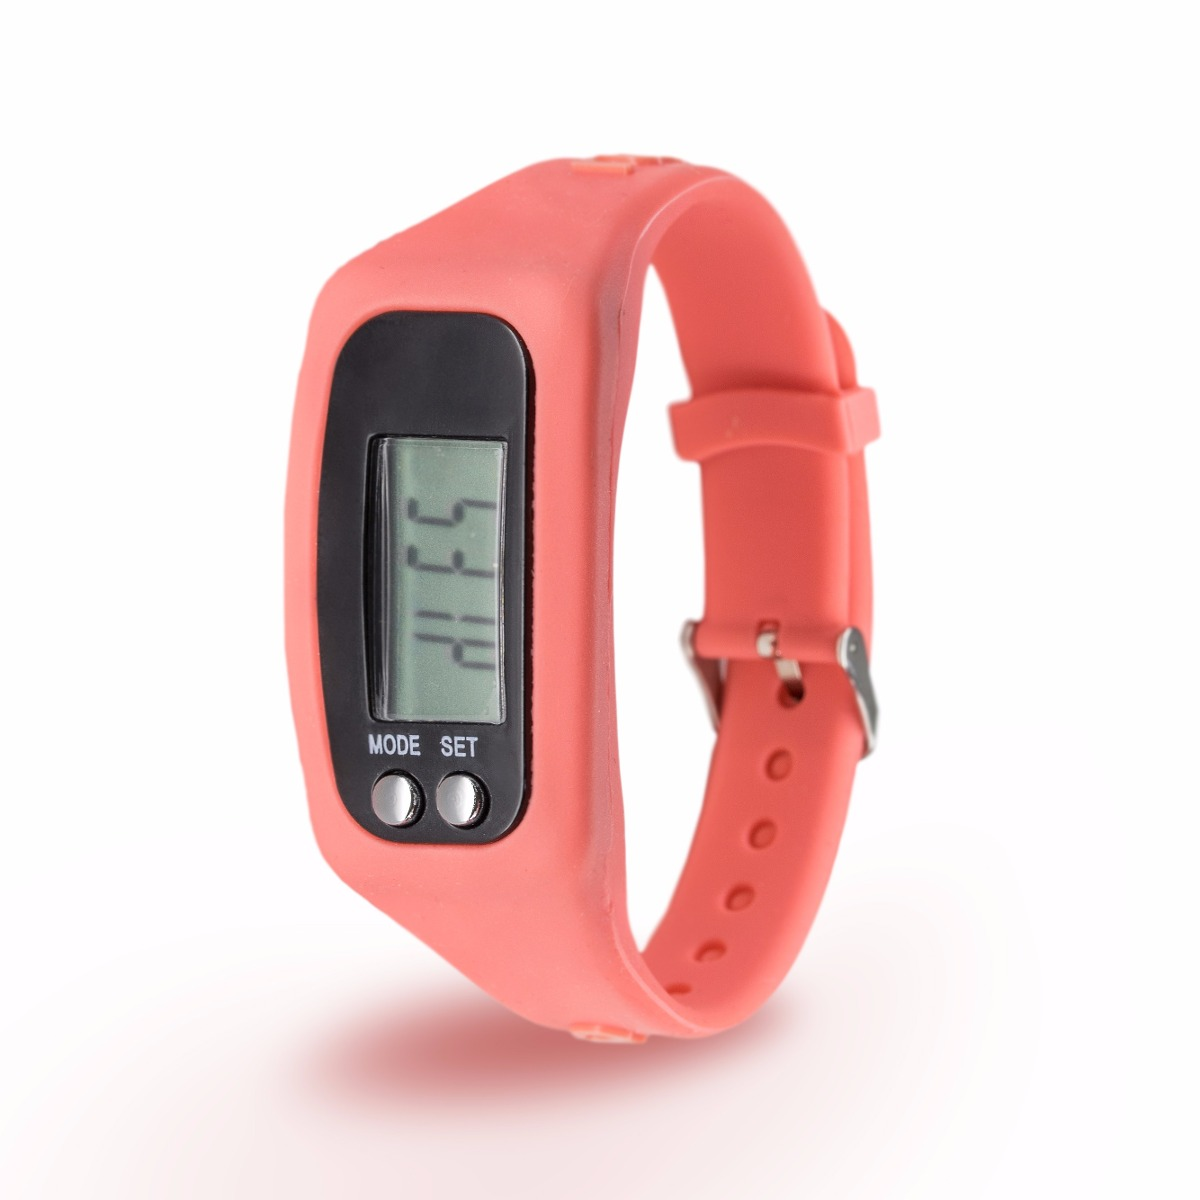 Rubberchic Reloj Digital Con Podometro Rubberchic Younger Coral